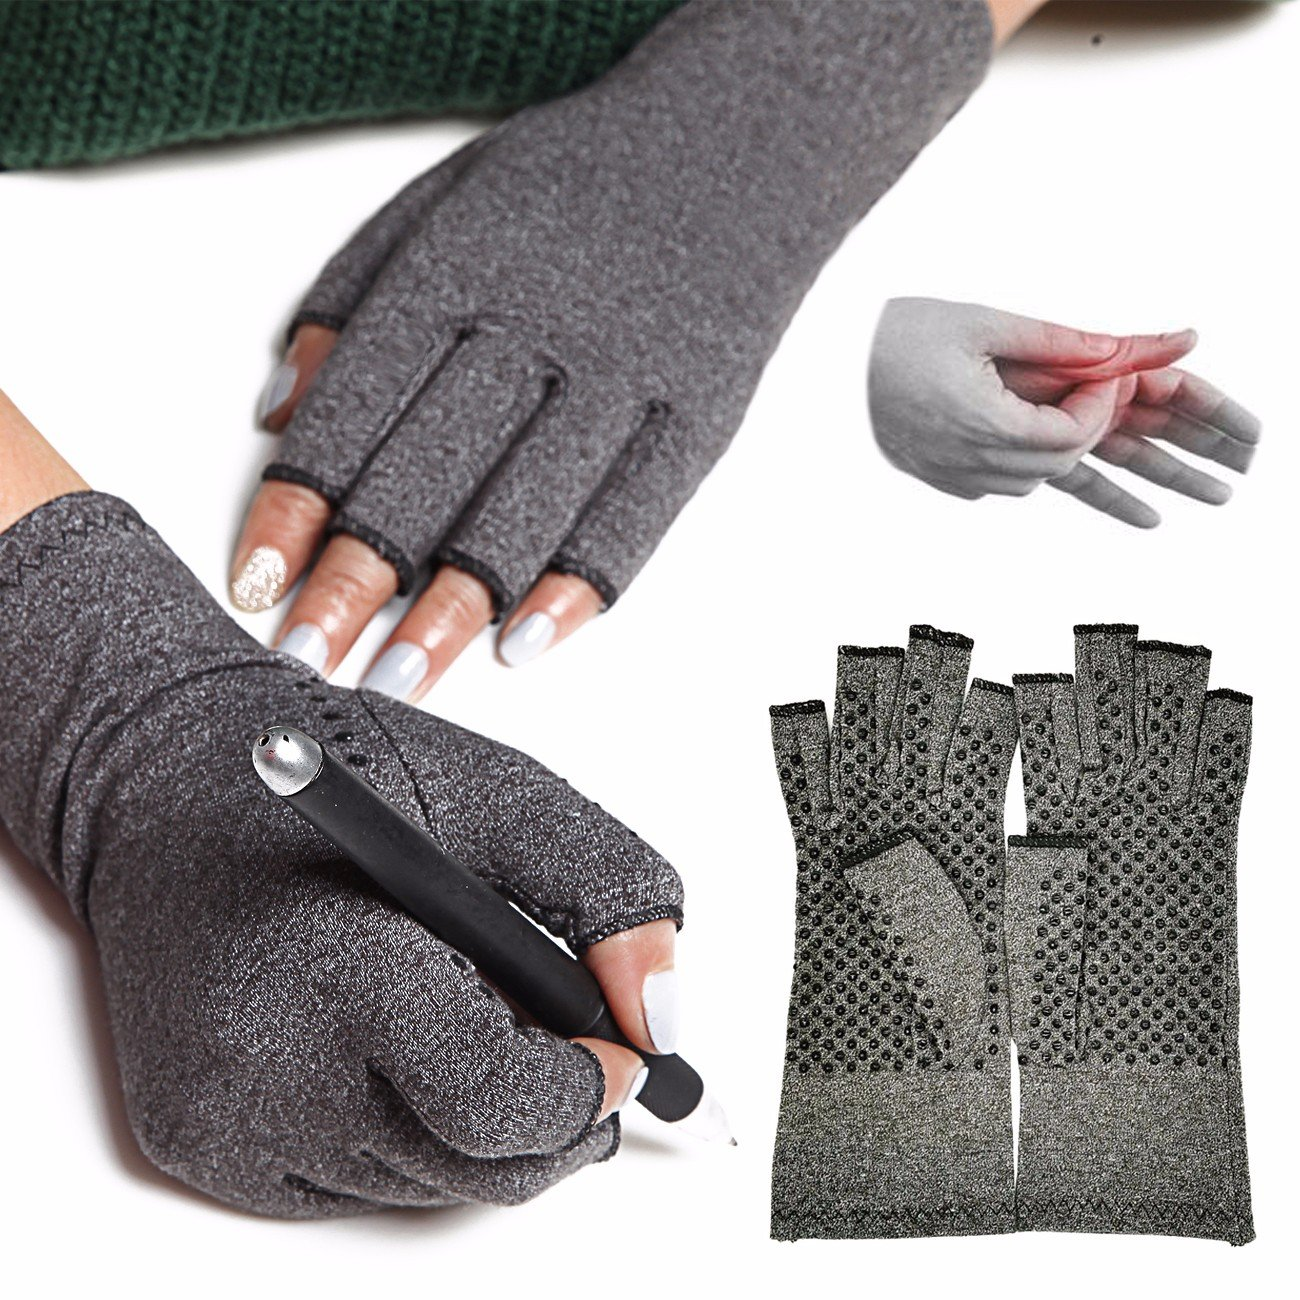 FITTOO Anti-Slip Arthritis Gloves (1 Pair) Gentle Compression for Recovery and Relieve Symptoms of Arthritis, RSI, Carpal Tunnel, Tendonitis, for Men and Women M